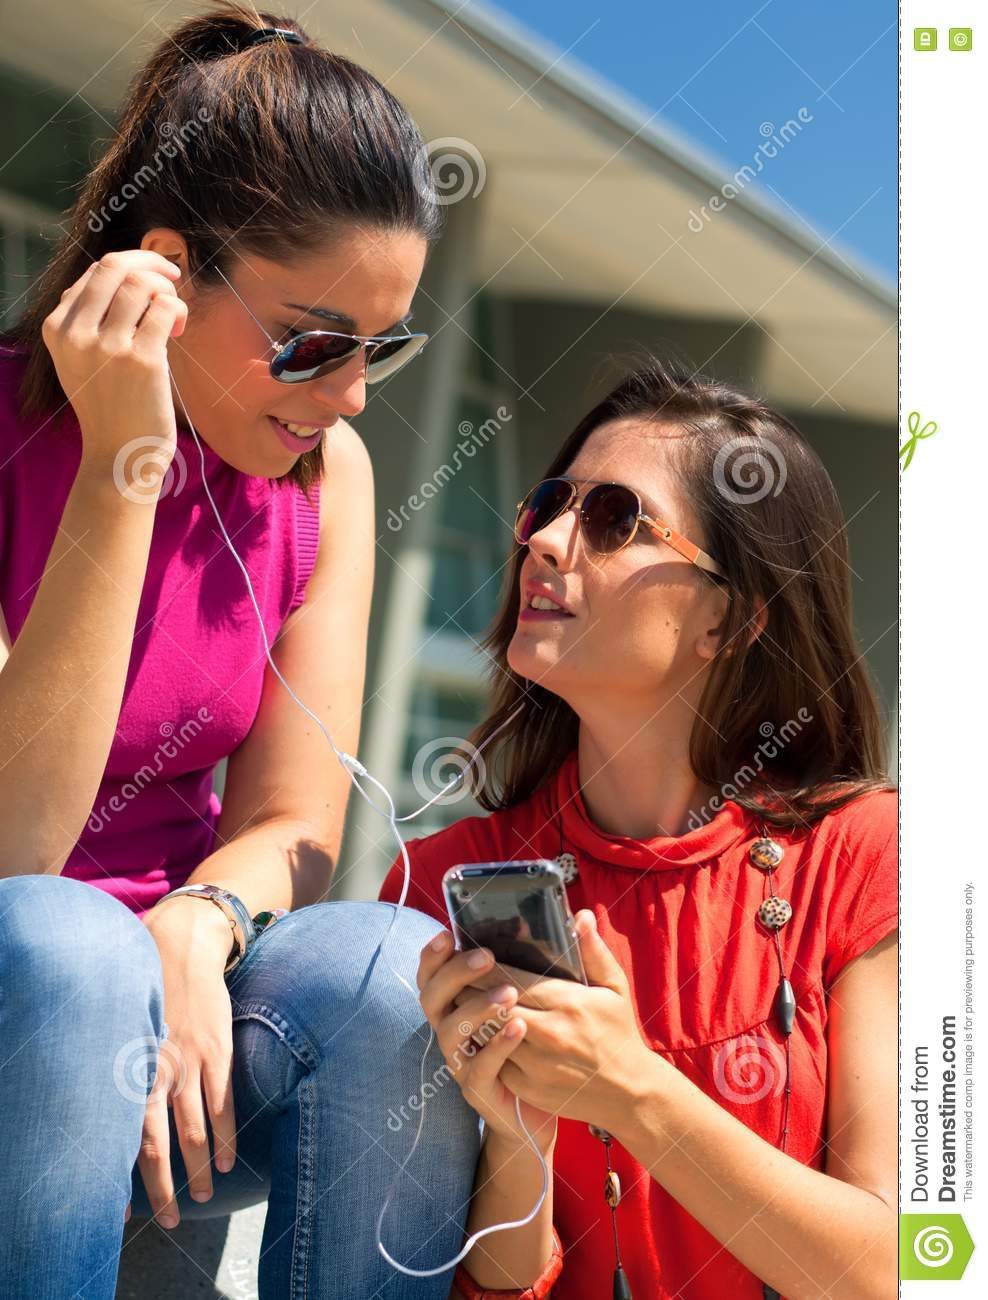 Two Friends Listening To Music Stock Photos - Image: 15898323